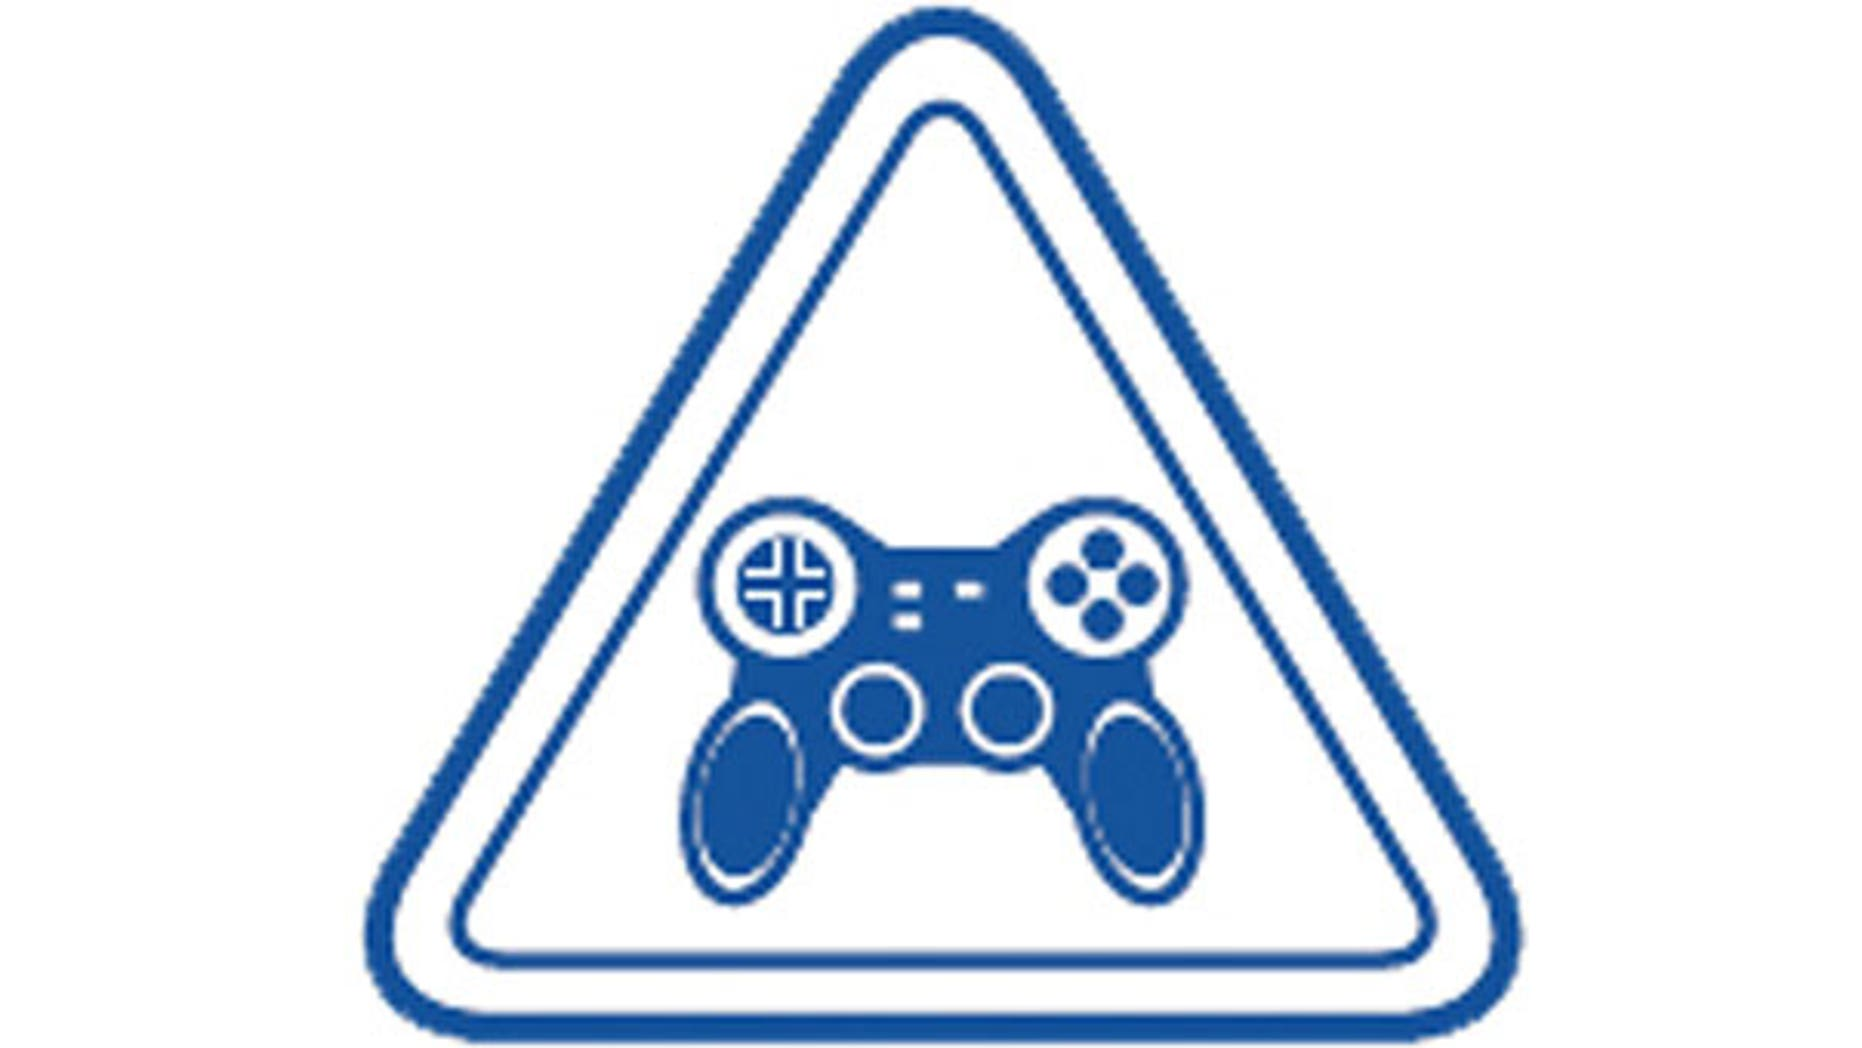 The new video game merit pin being offered to Tiger Cubs, Cub Scouts, and Webelos Scouts.